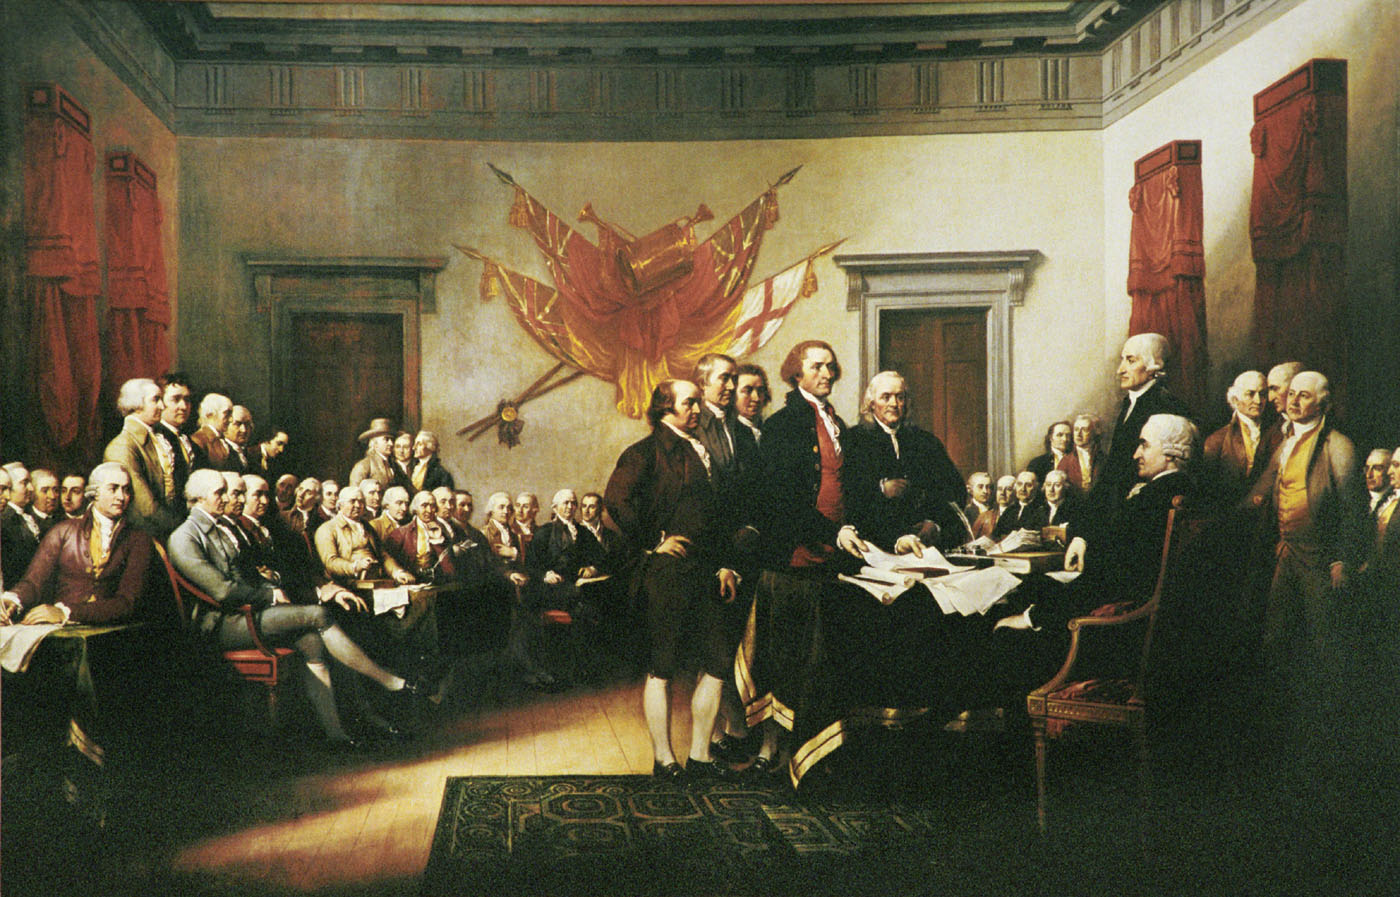 A Patriotic Quiz about the Declaration of Independence